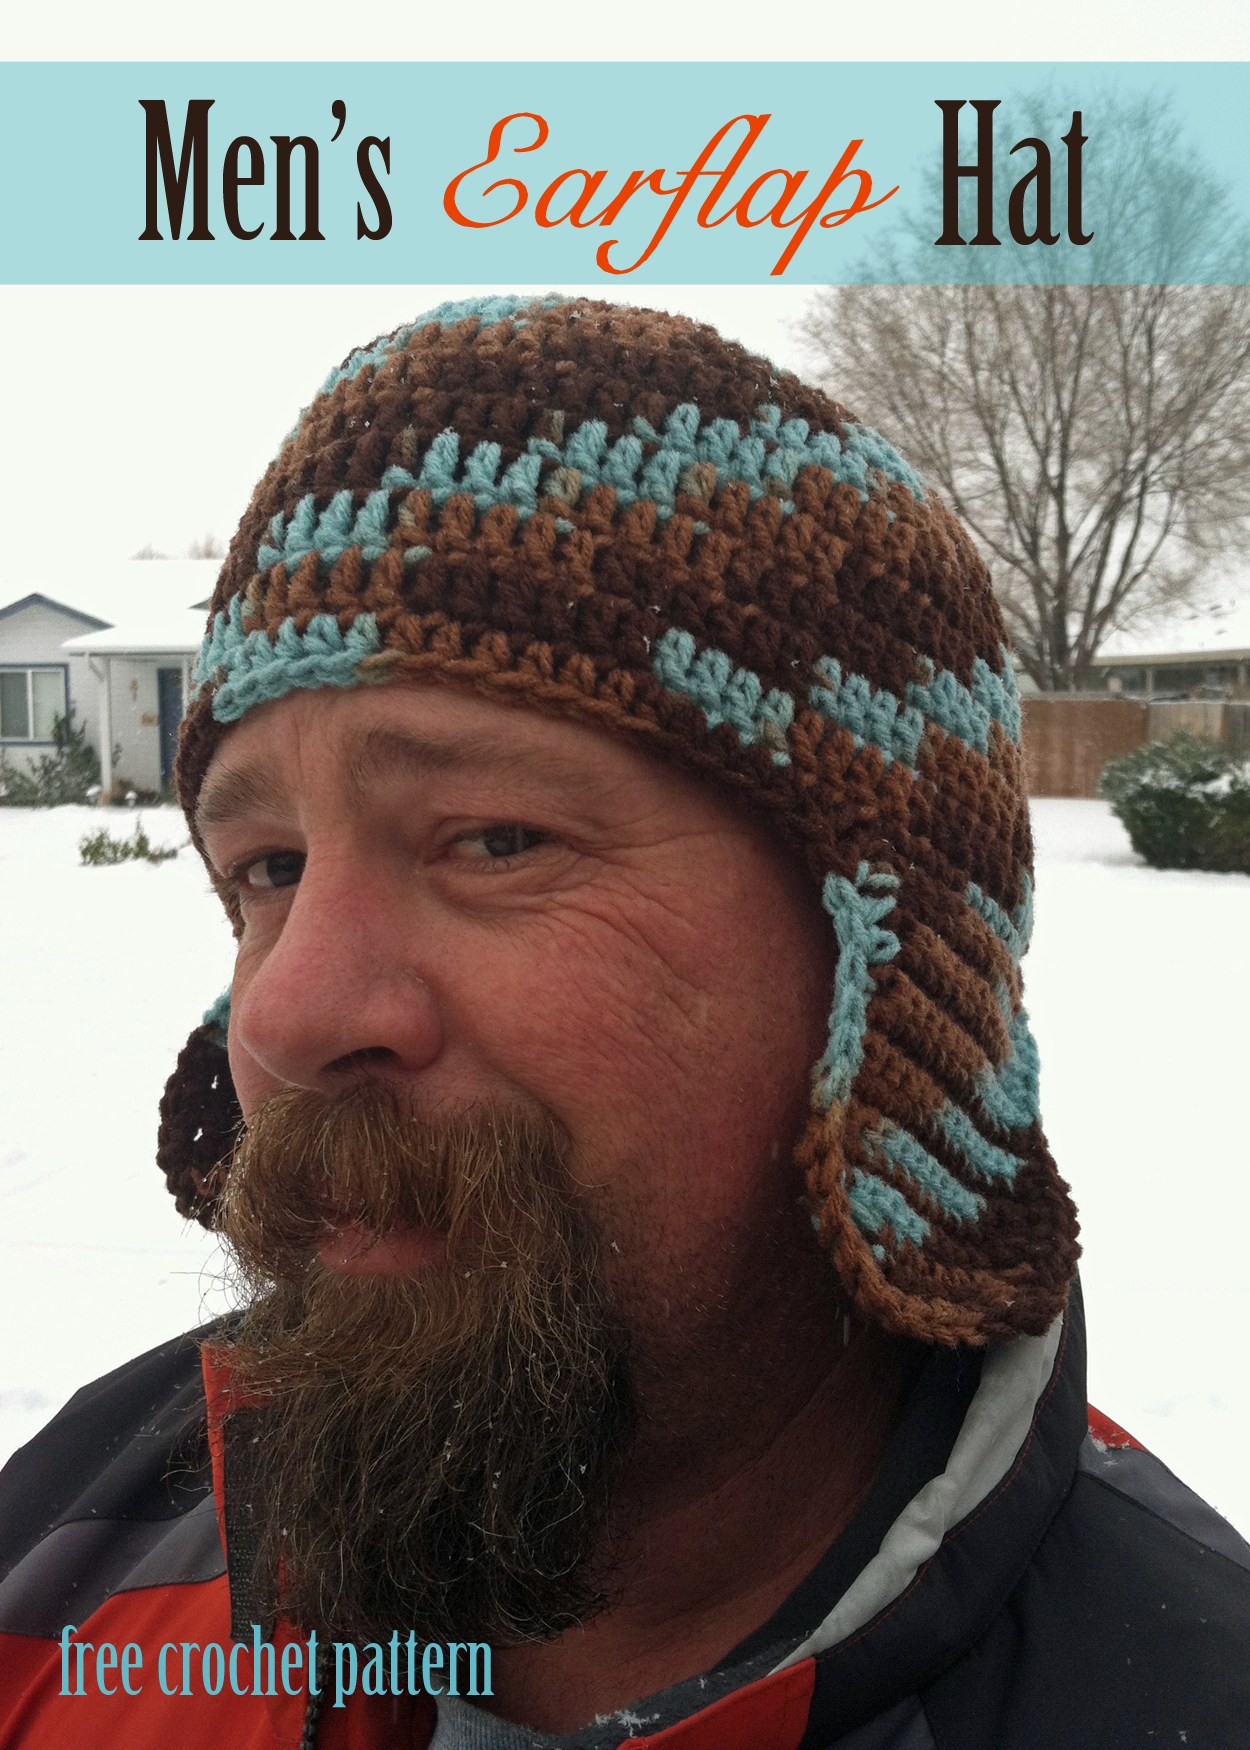 Crochet Beanies For Men Free Crochet Pattern Mens Earflap Hat